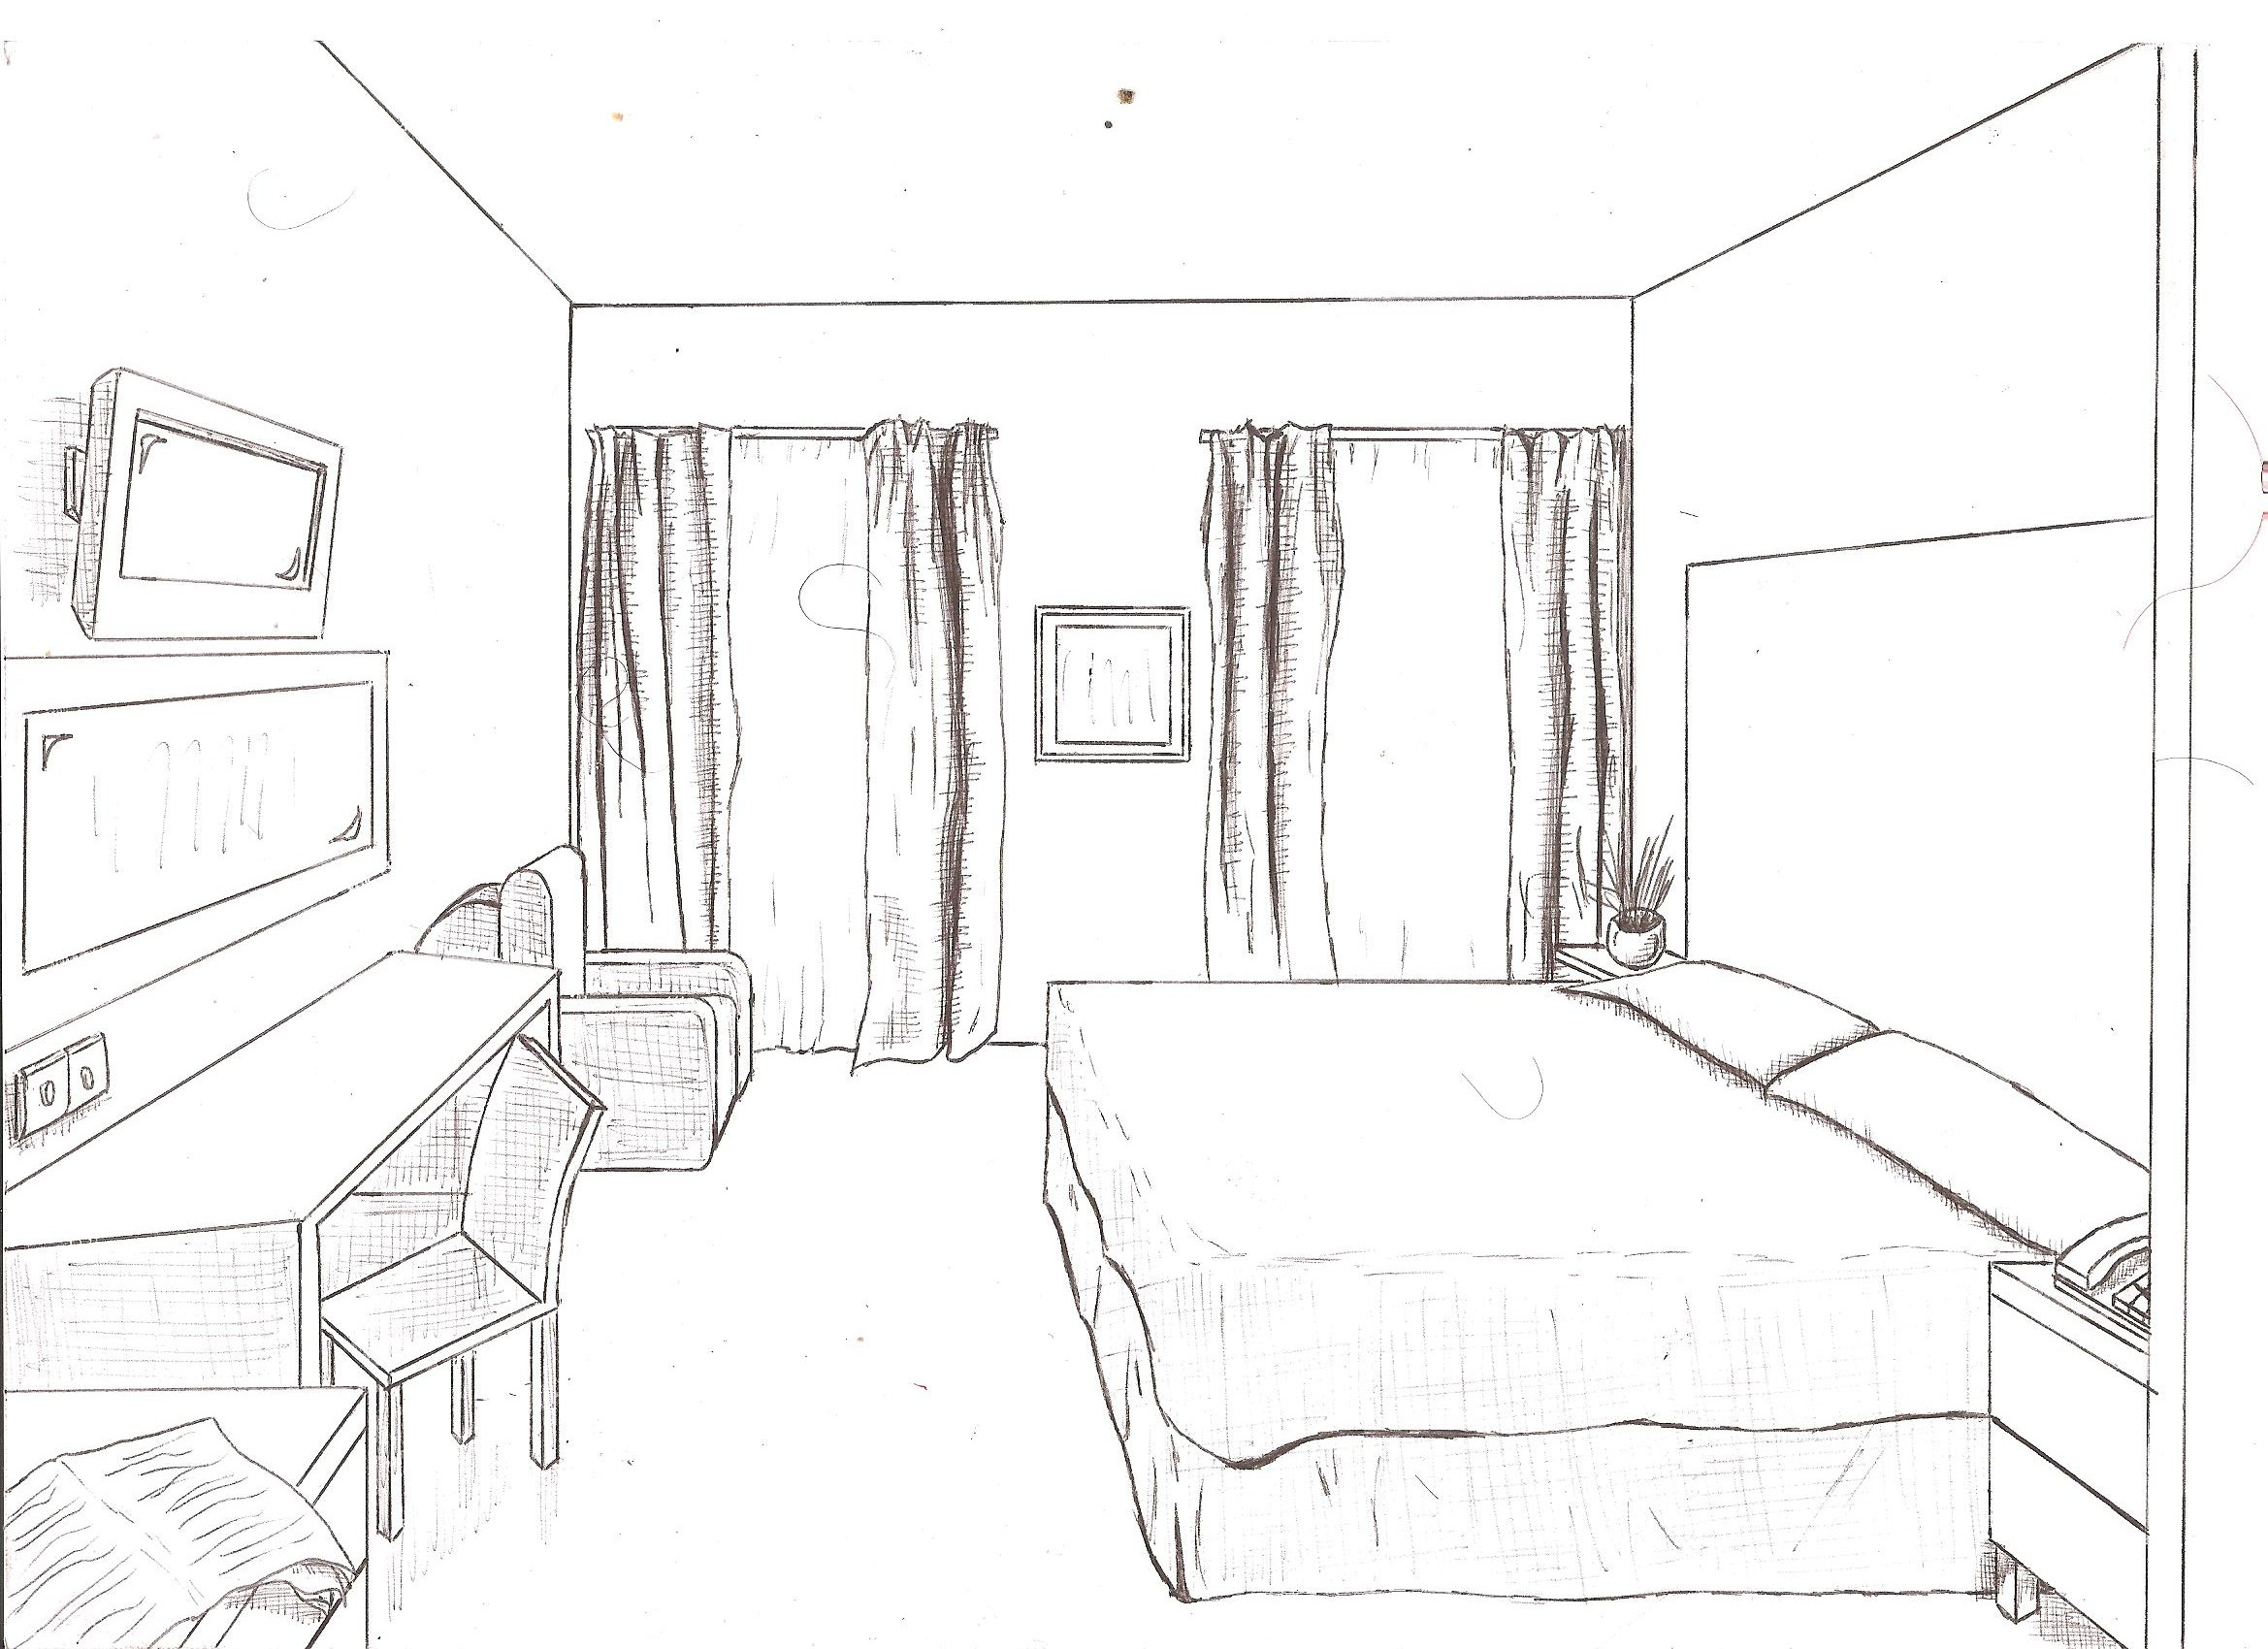 2338x1700 1 Point Of View Room In Drawing Drawings From Floor Plans